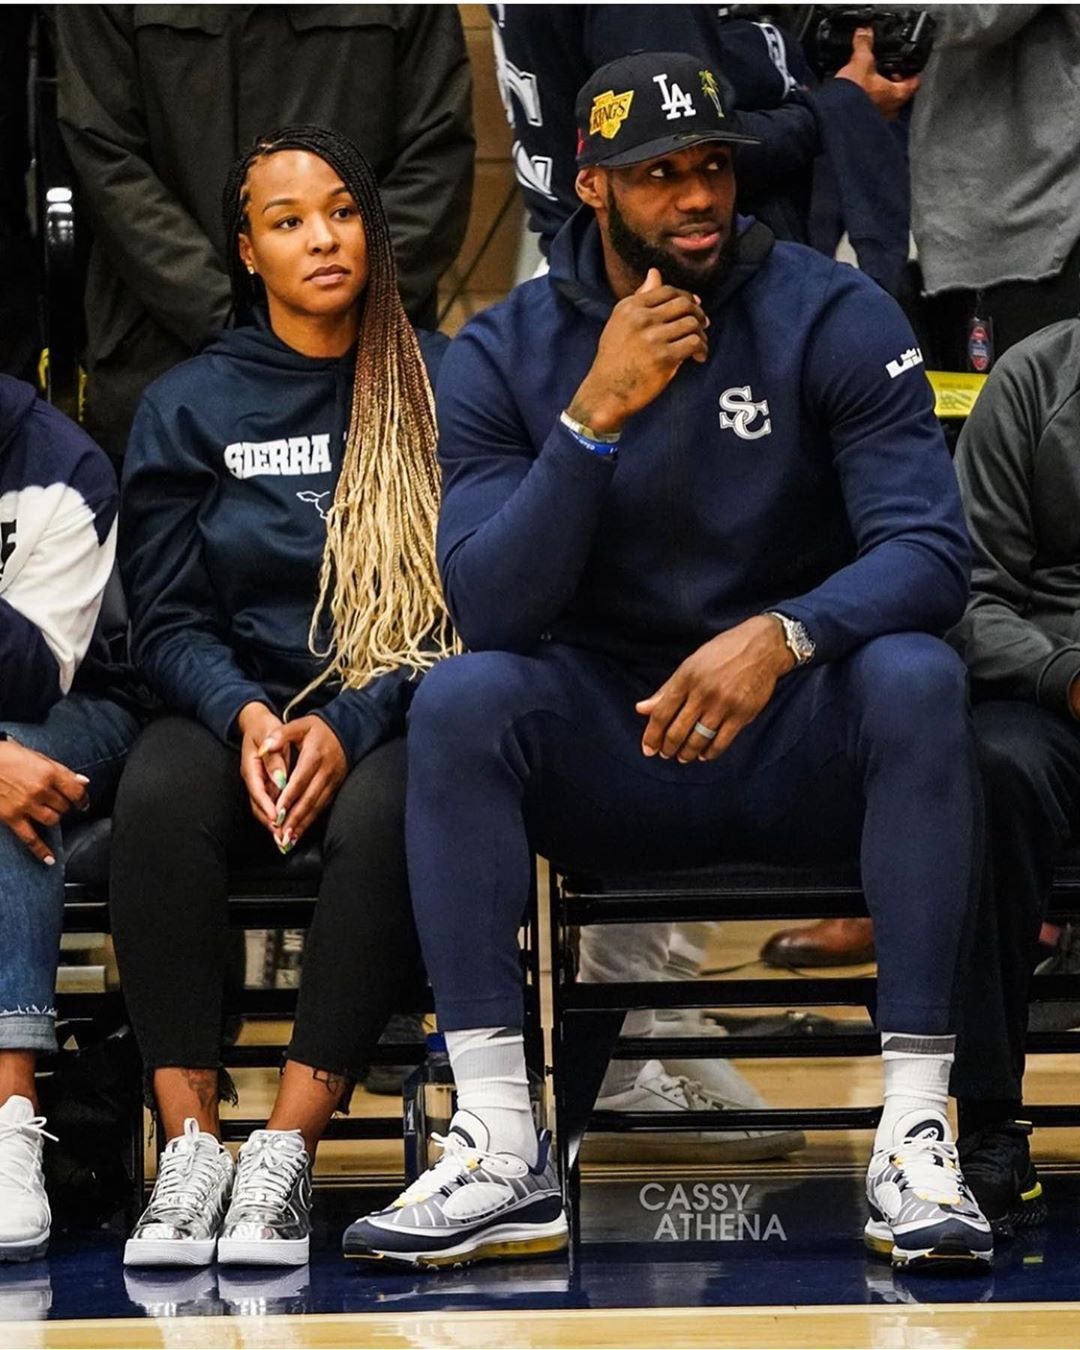 104 Likes 1 Comments Lipstick Iced Tea Glitter Litng18 On Instagram Comments In 2020 Lebron James And Wife Retro High Waisted Bikini Lebron James Family